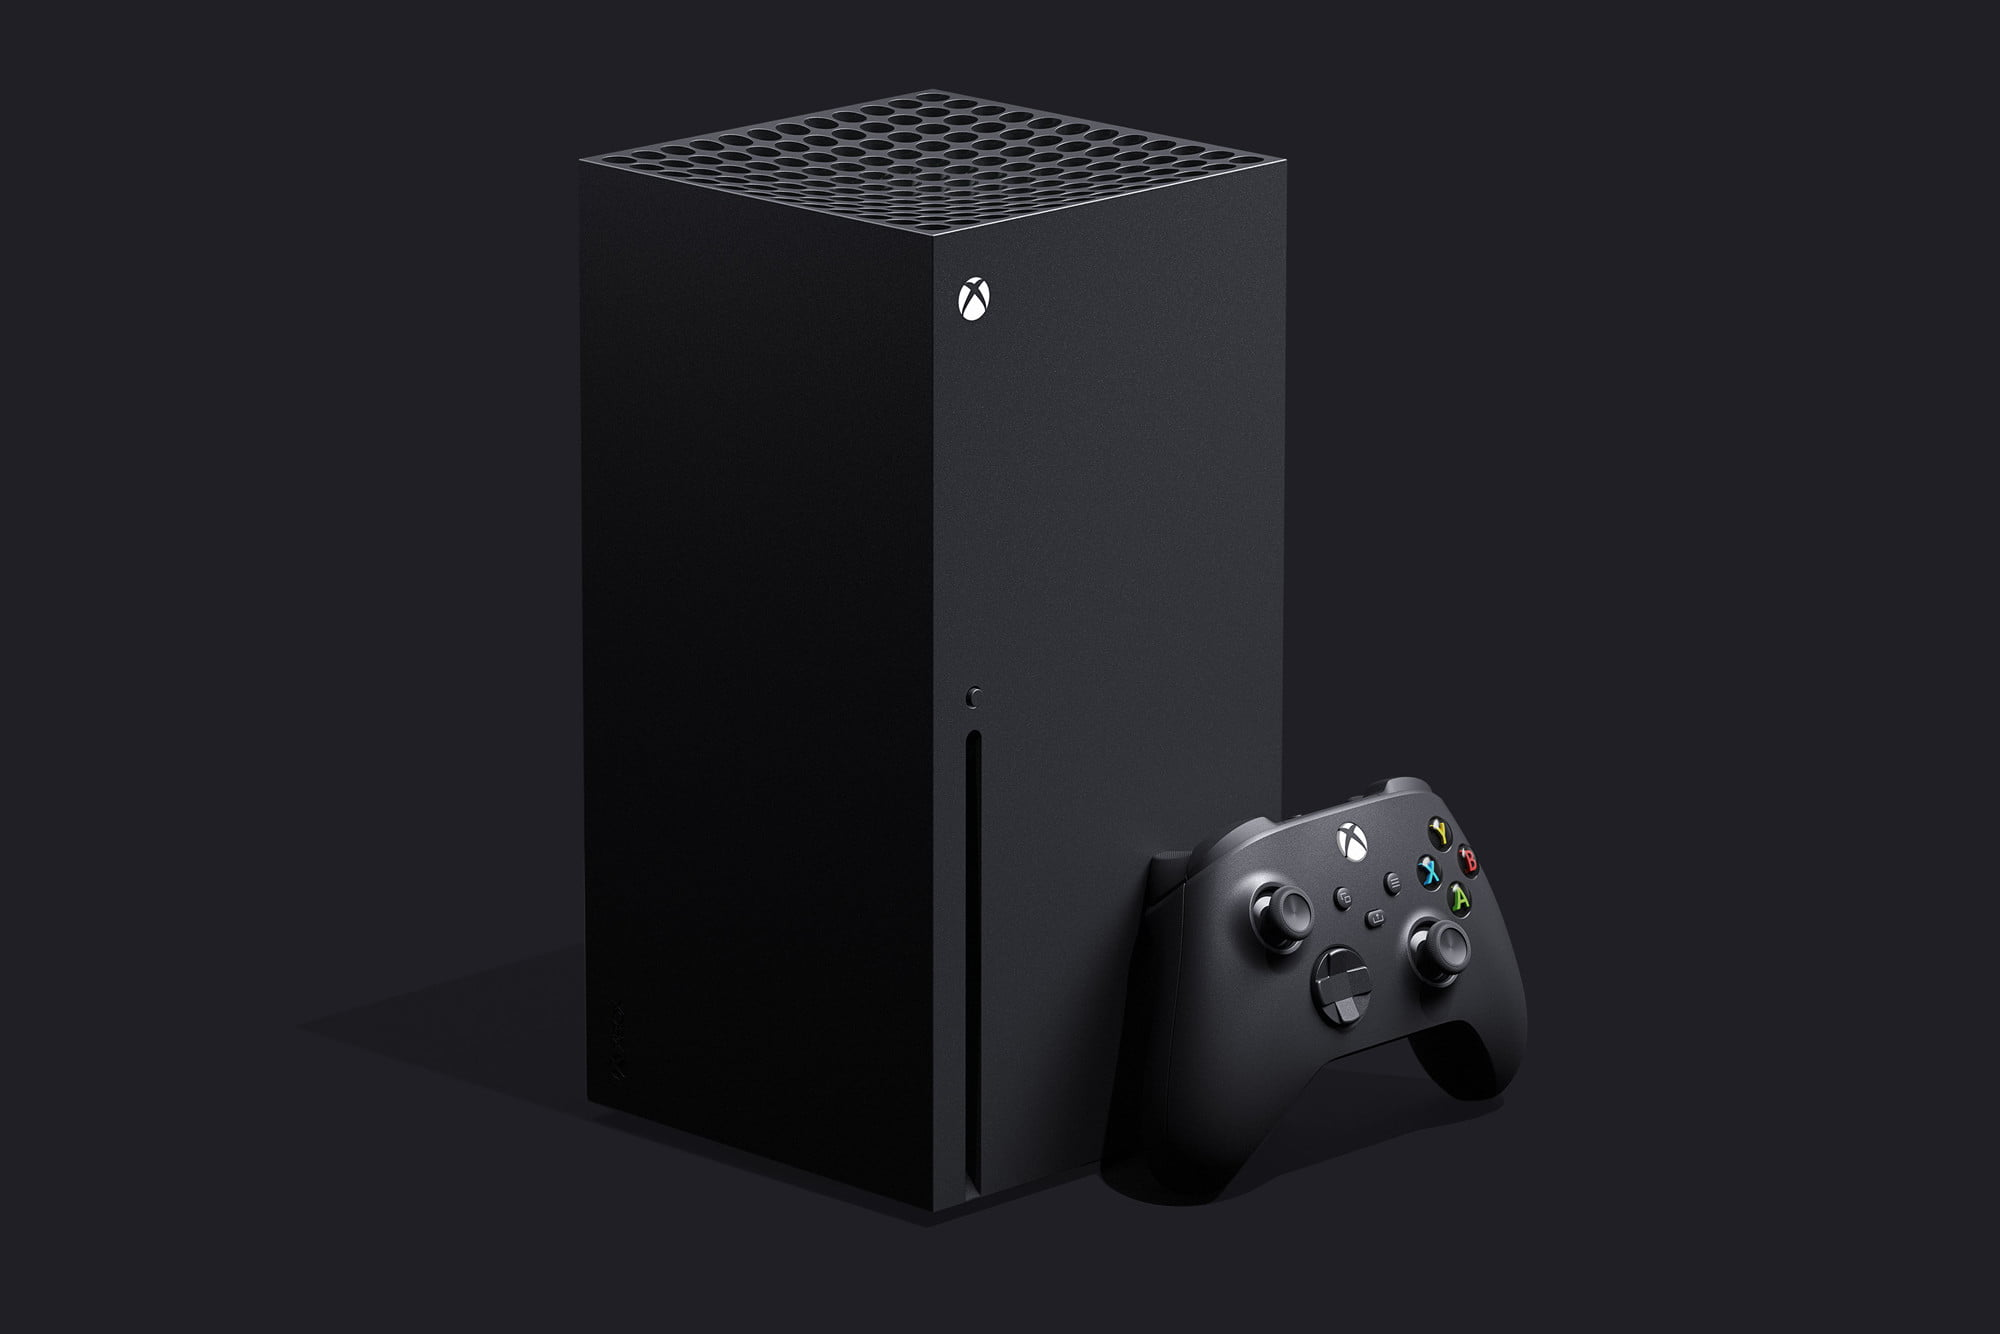 Microsoft says its next-generation console is actually just called Xbox